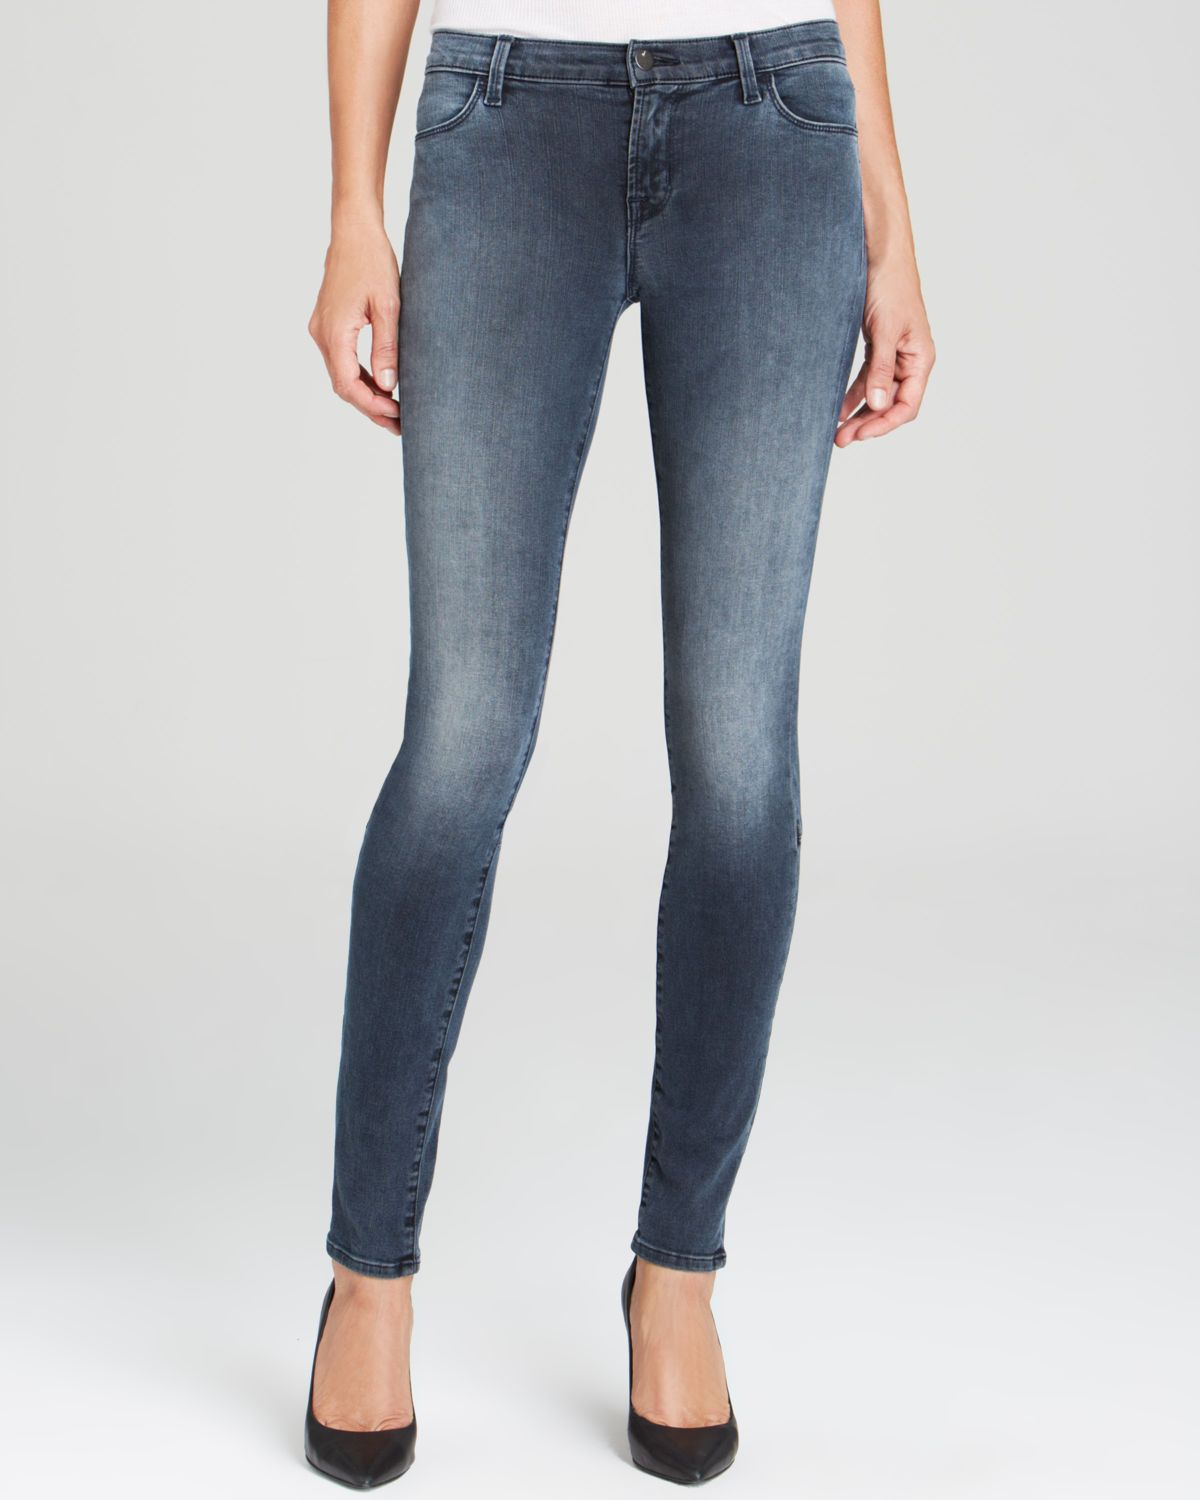 336d8dcf J Brand Jeans - Photo Ready Kamila Zip Back Skinny In Crush in Blue ...